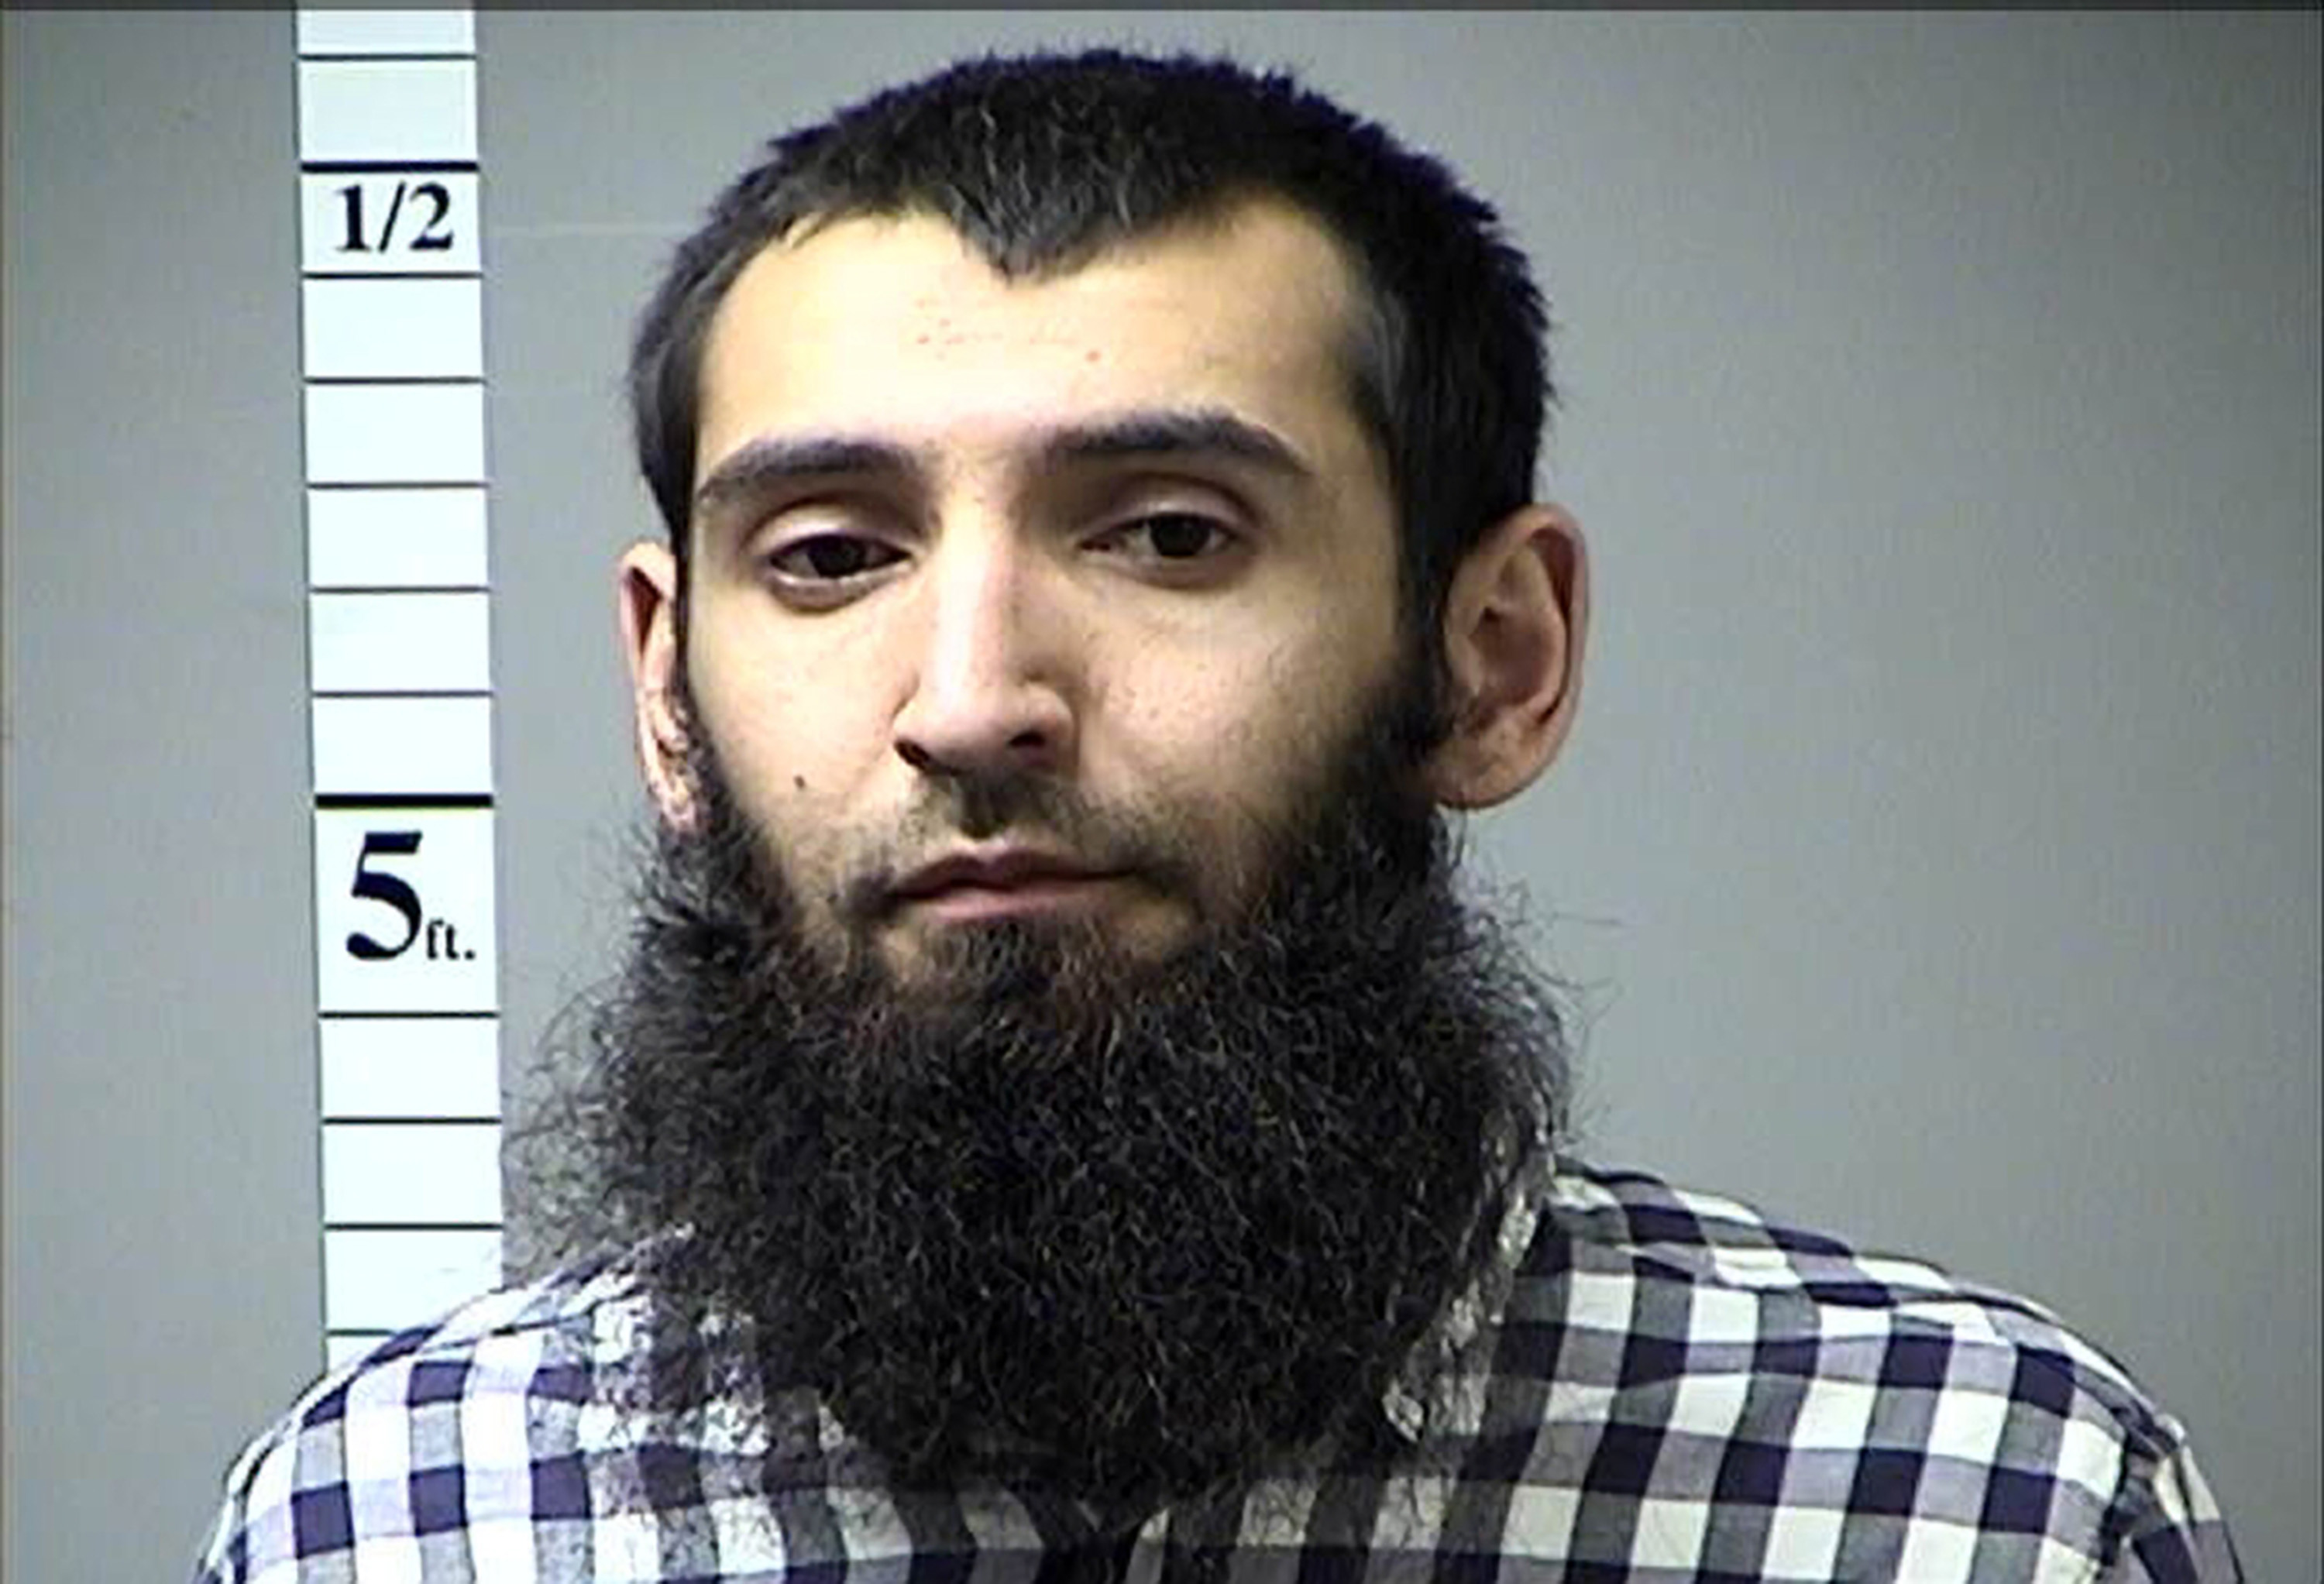 Sayfullo Saipov's sister says her 'brainwashed' brother shouldn't get death penalty for bike path attack Featured